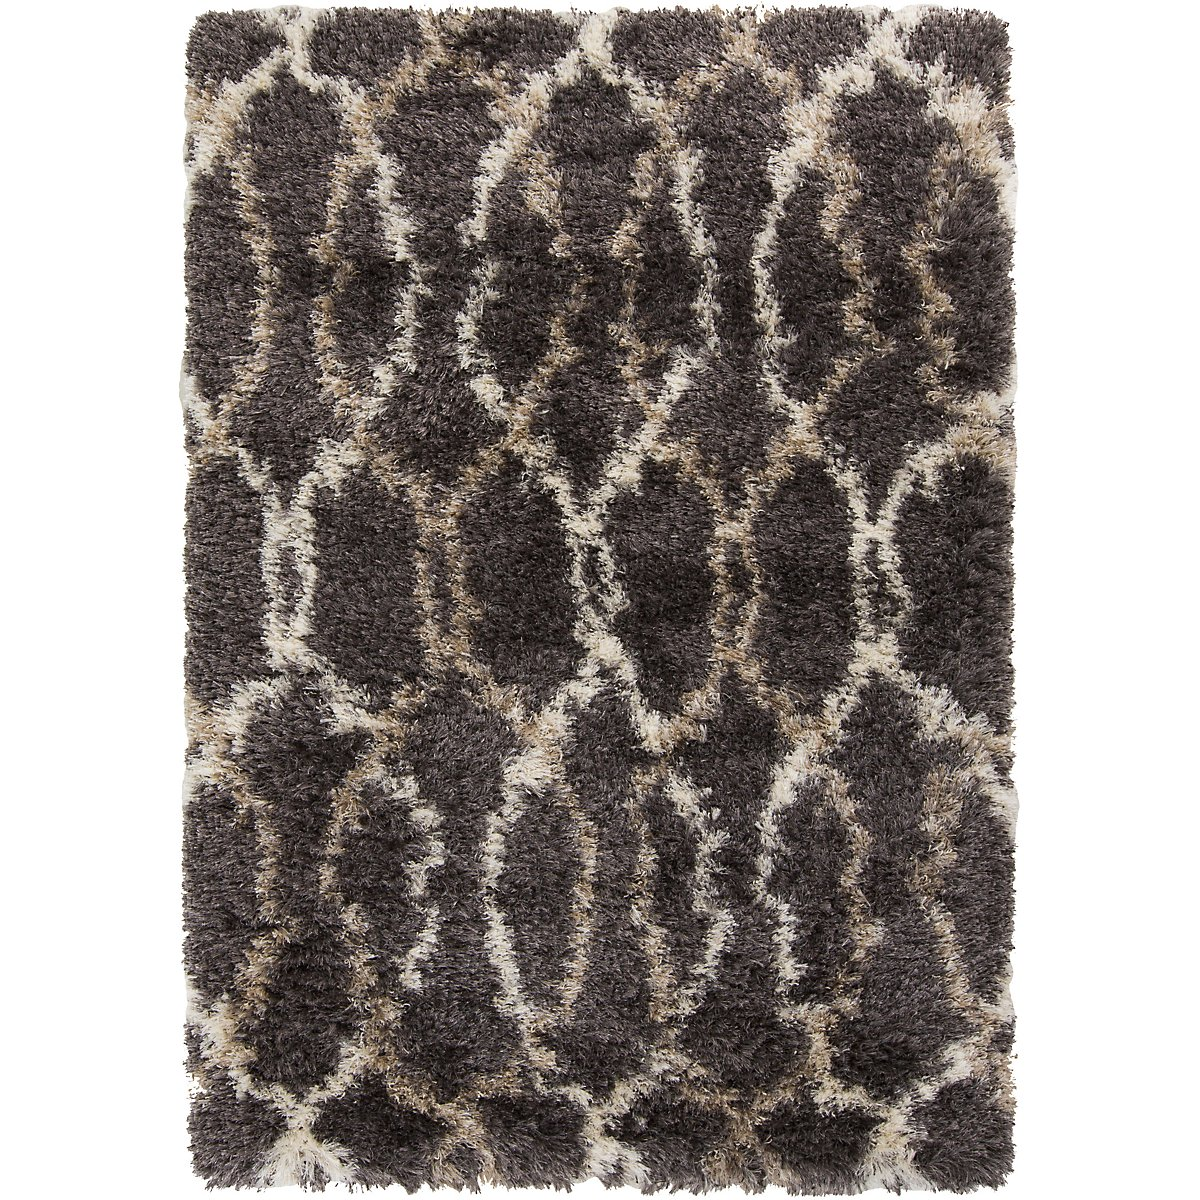 Rhapsody Dark Gray 8X10 Area Rug